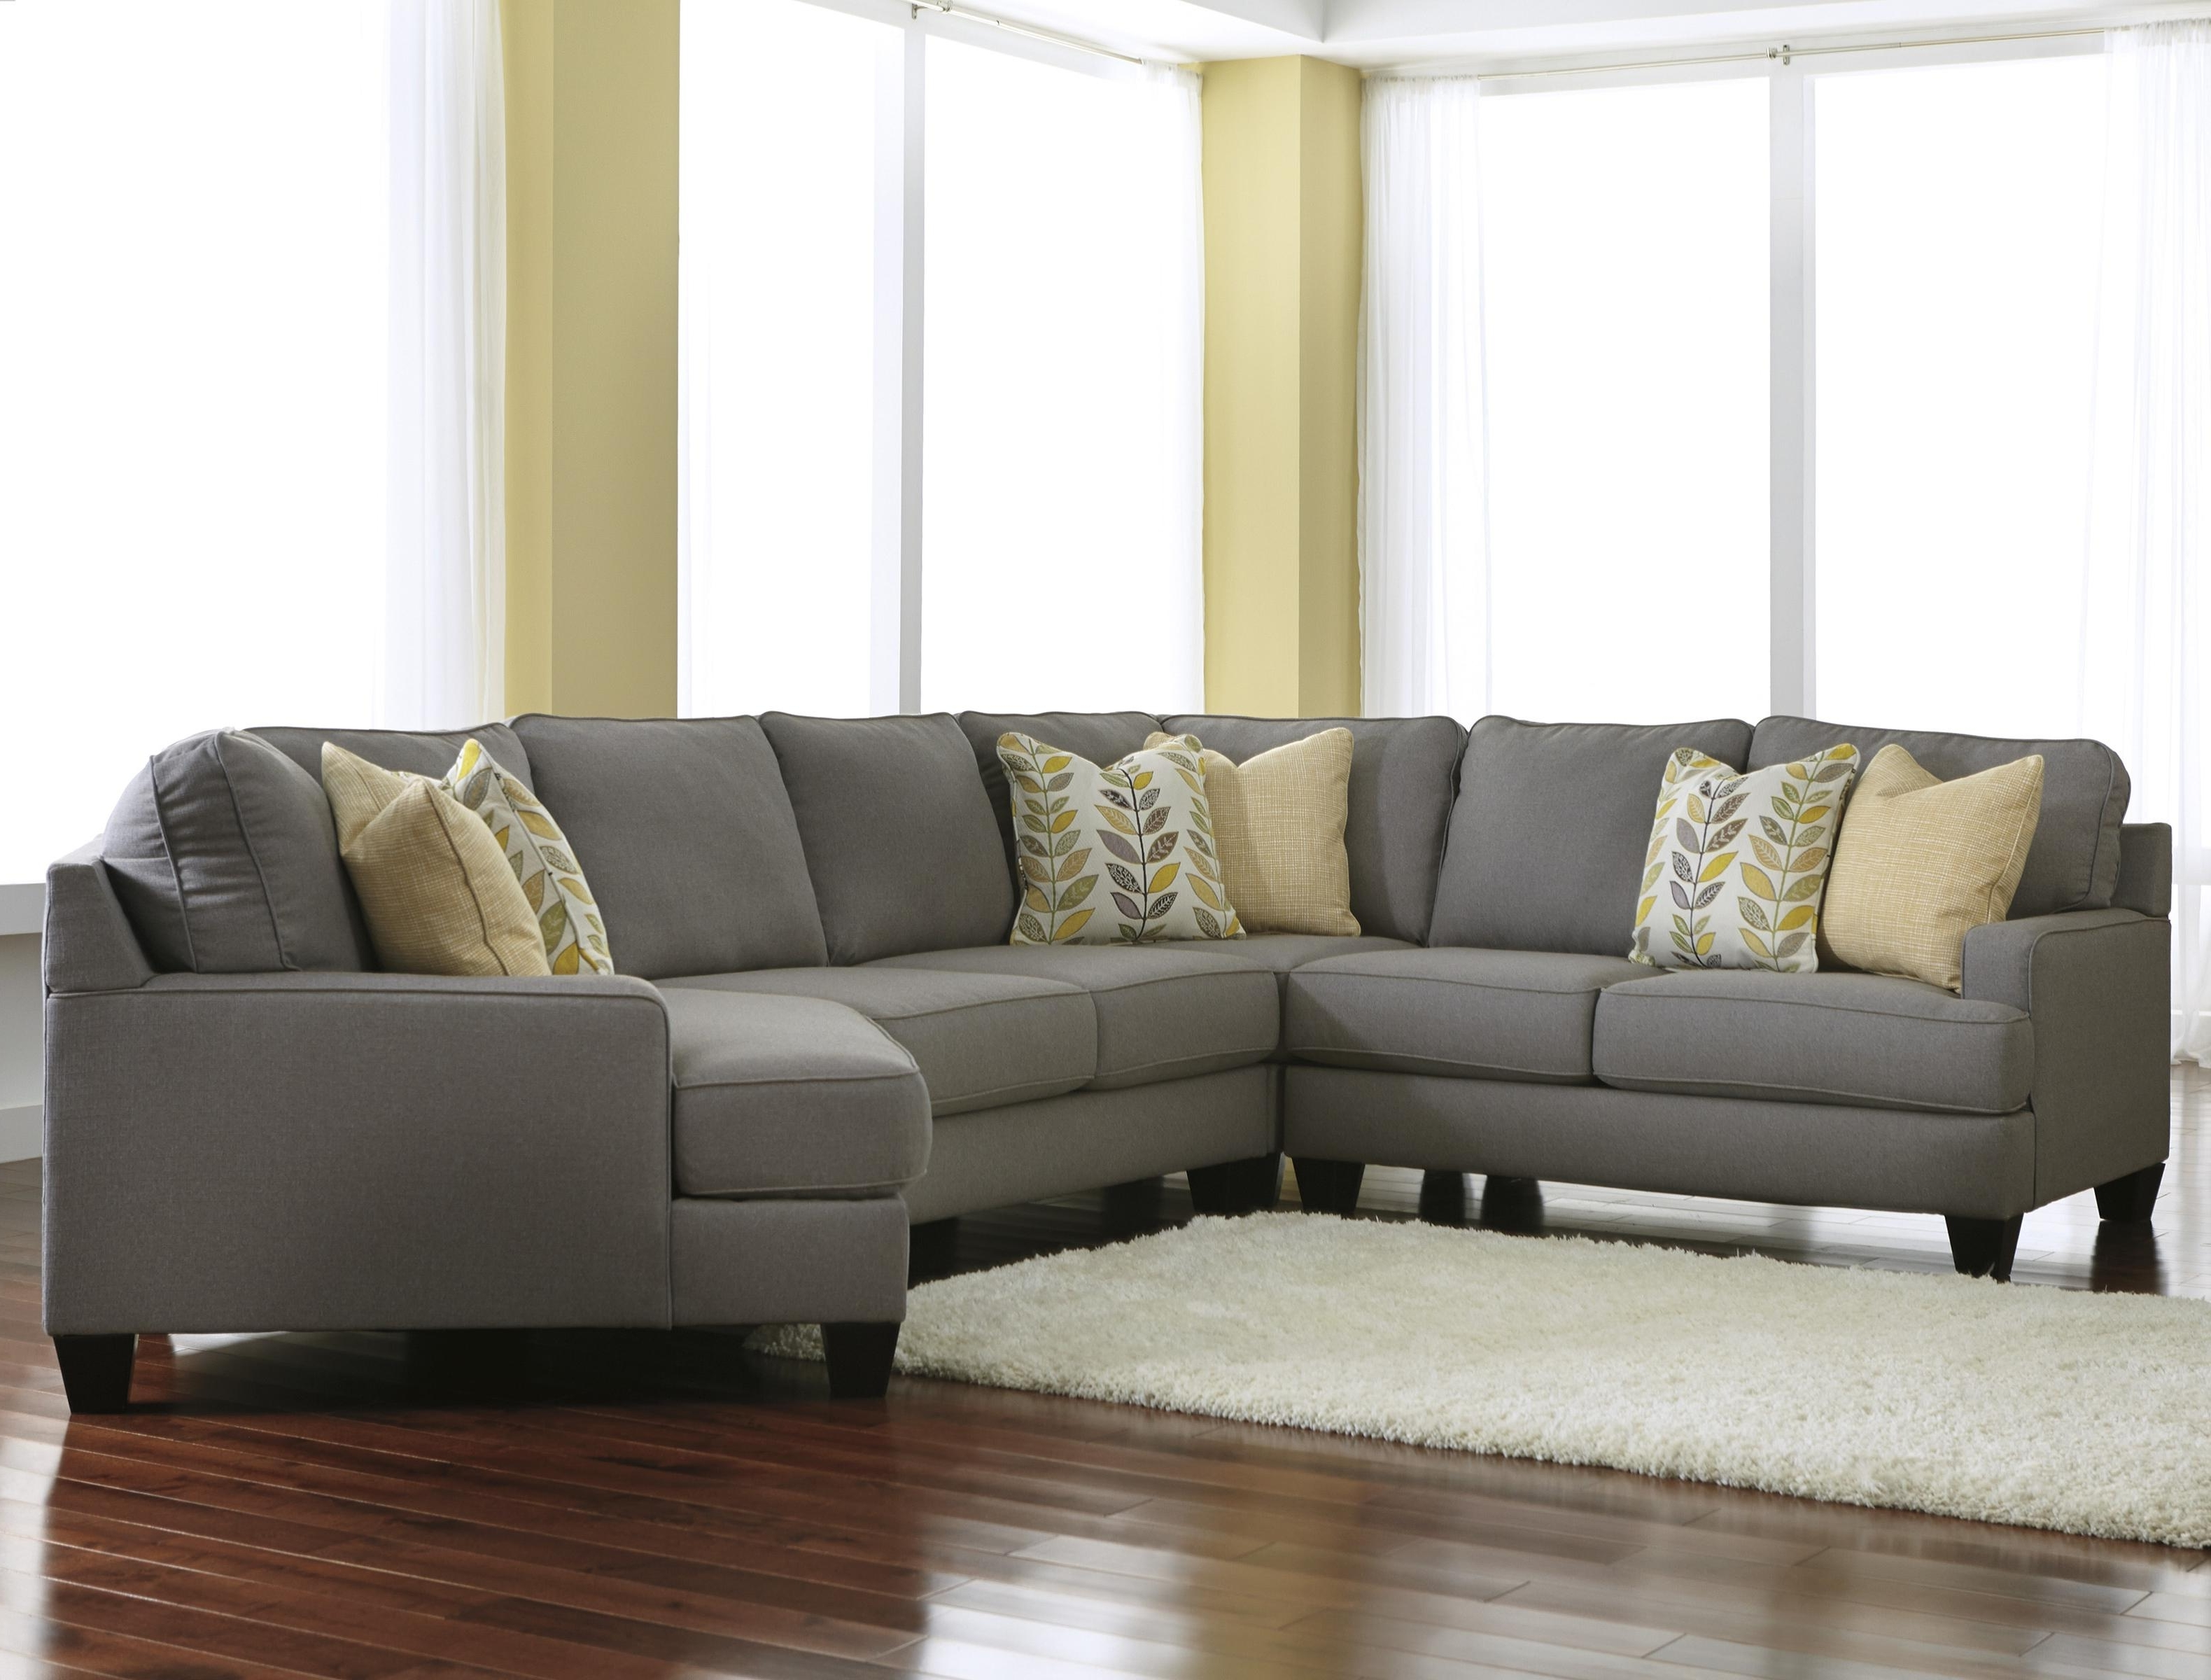 Sectional Sofas With Cuddler With Best And Newest Modern 4 Piece Sectional Sofa With Right Cuddler & Reversible Seat (View 15 of 20)